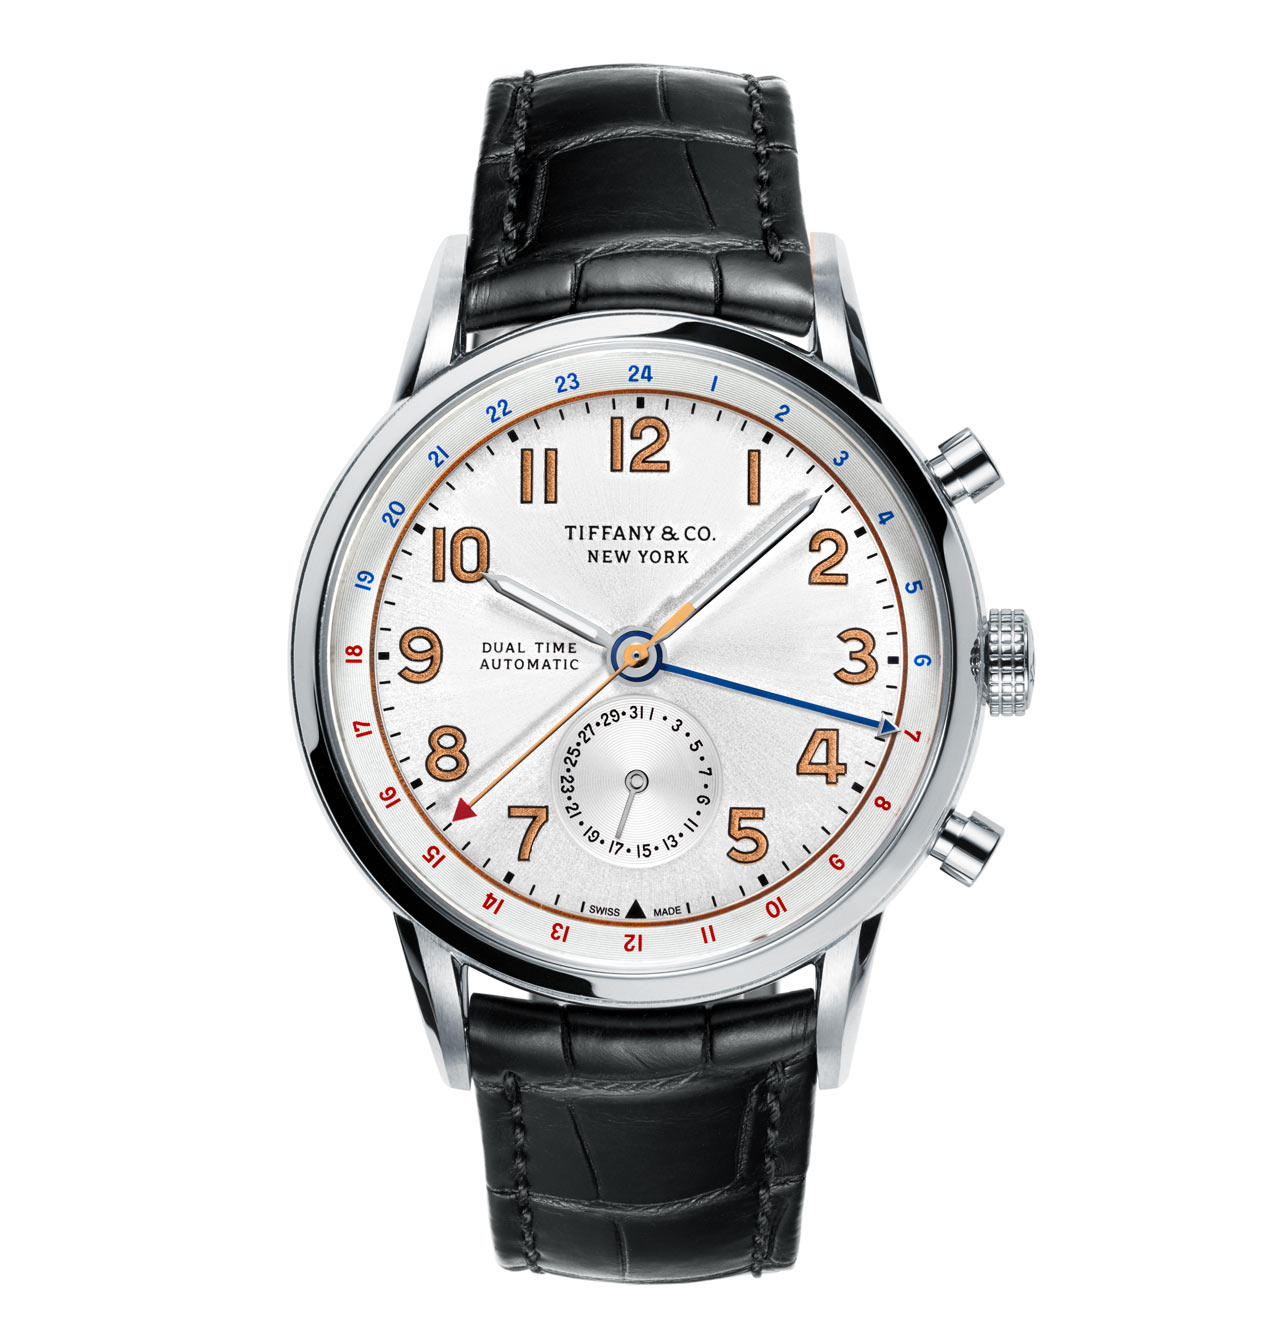 47b4ebe631f4 The local time zone can be quickly adjusted by using the two push-buttons  which give the watch the look of a chronograph. The 2 o  clock pusher is  used to ...